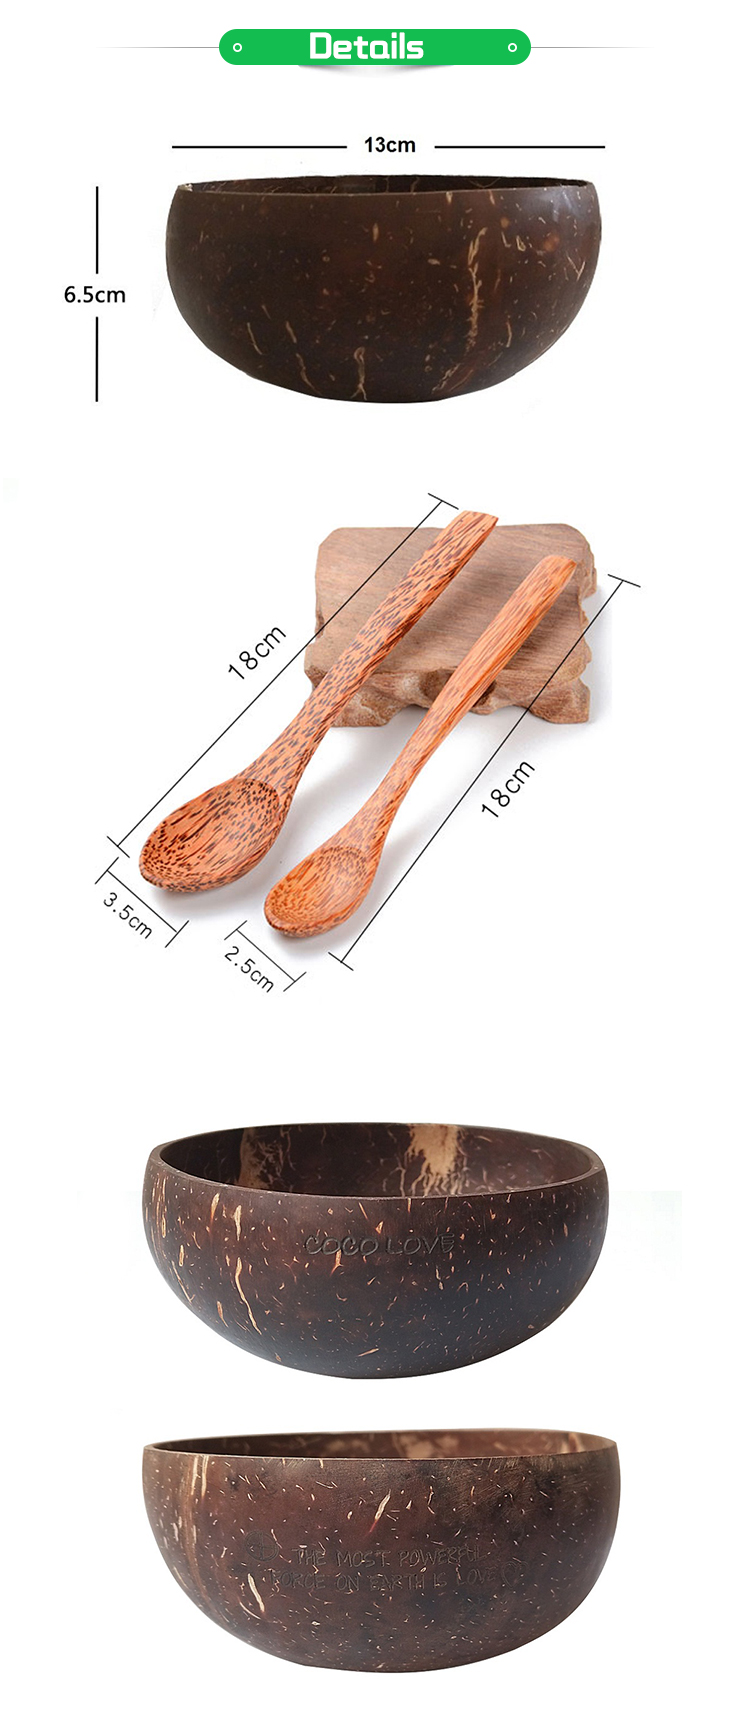 Health and Environmental Protection Coconut Shell Bowls and Wooden Spoon Sets